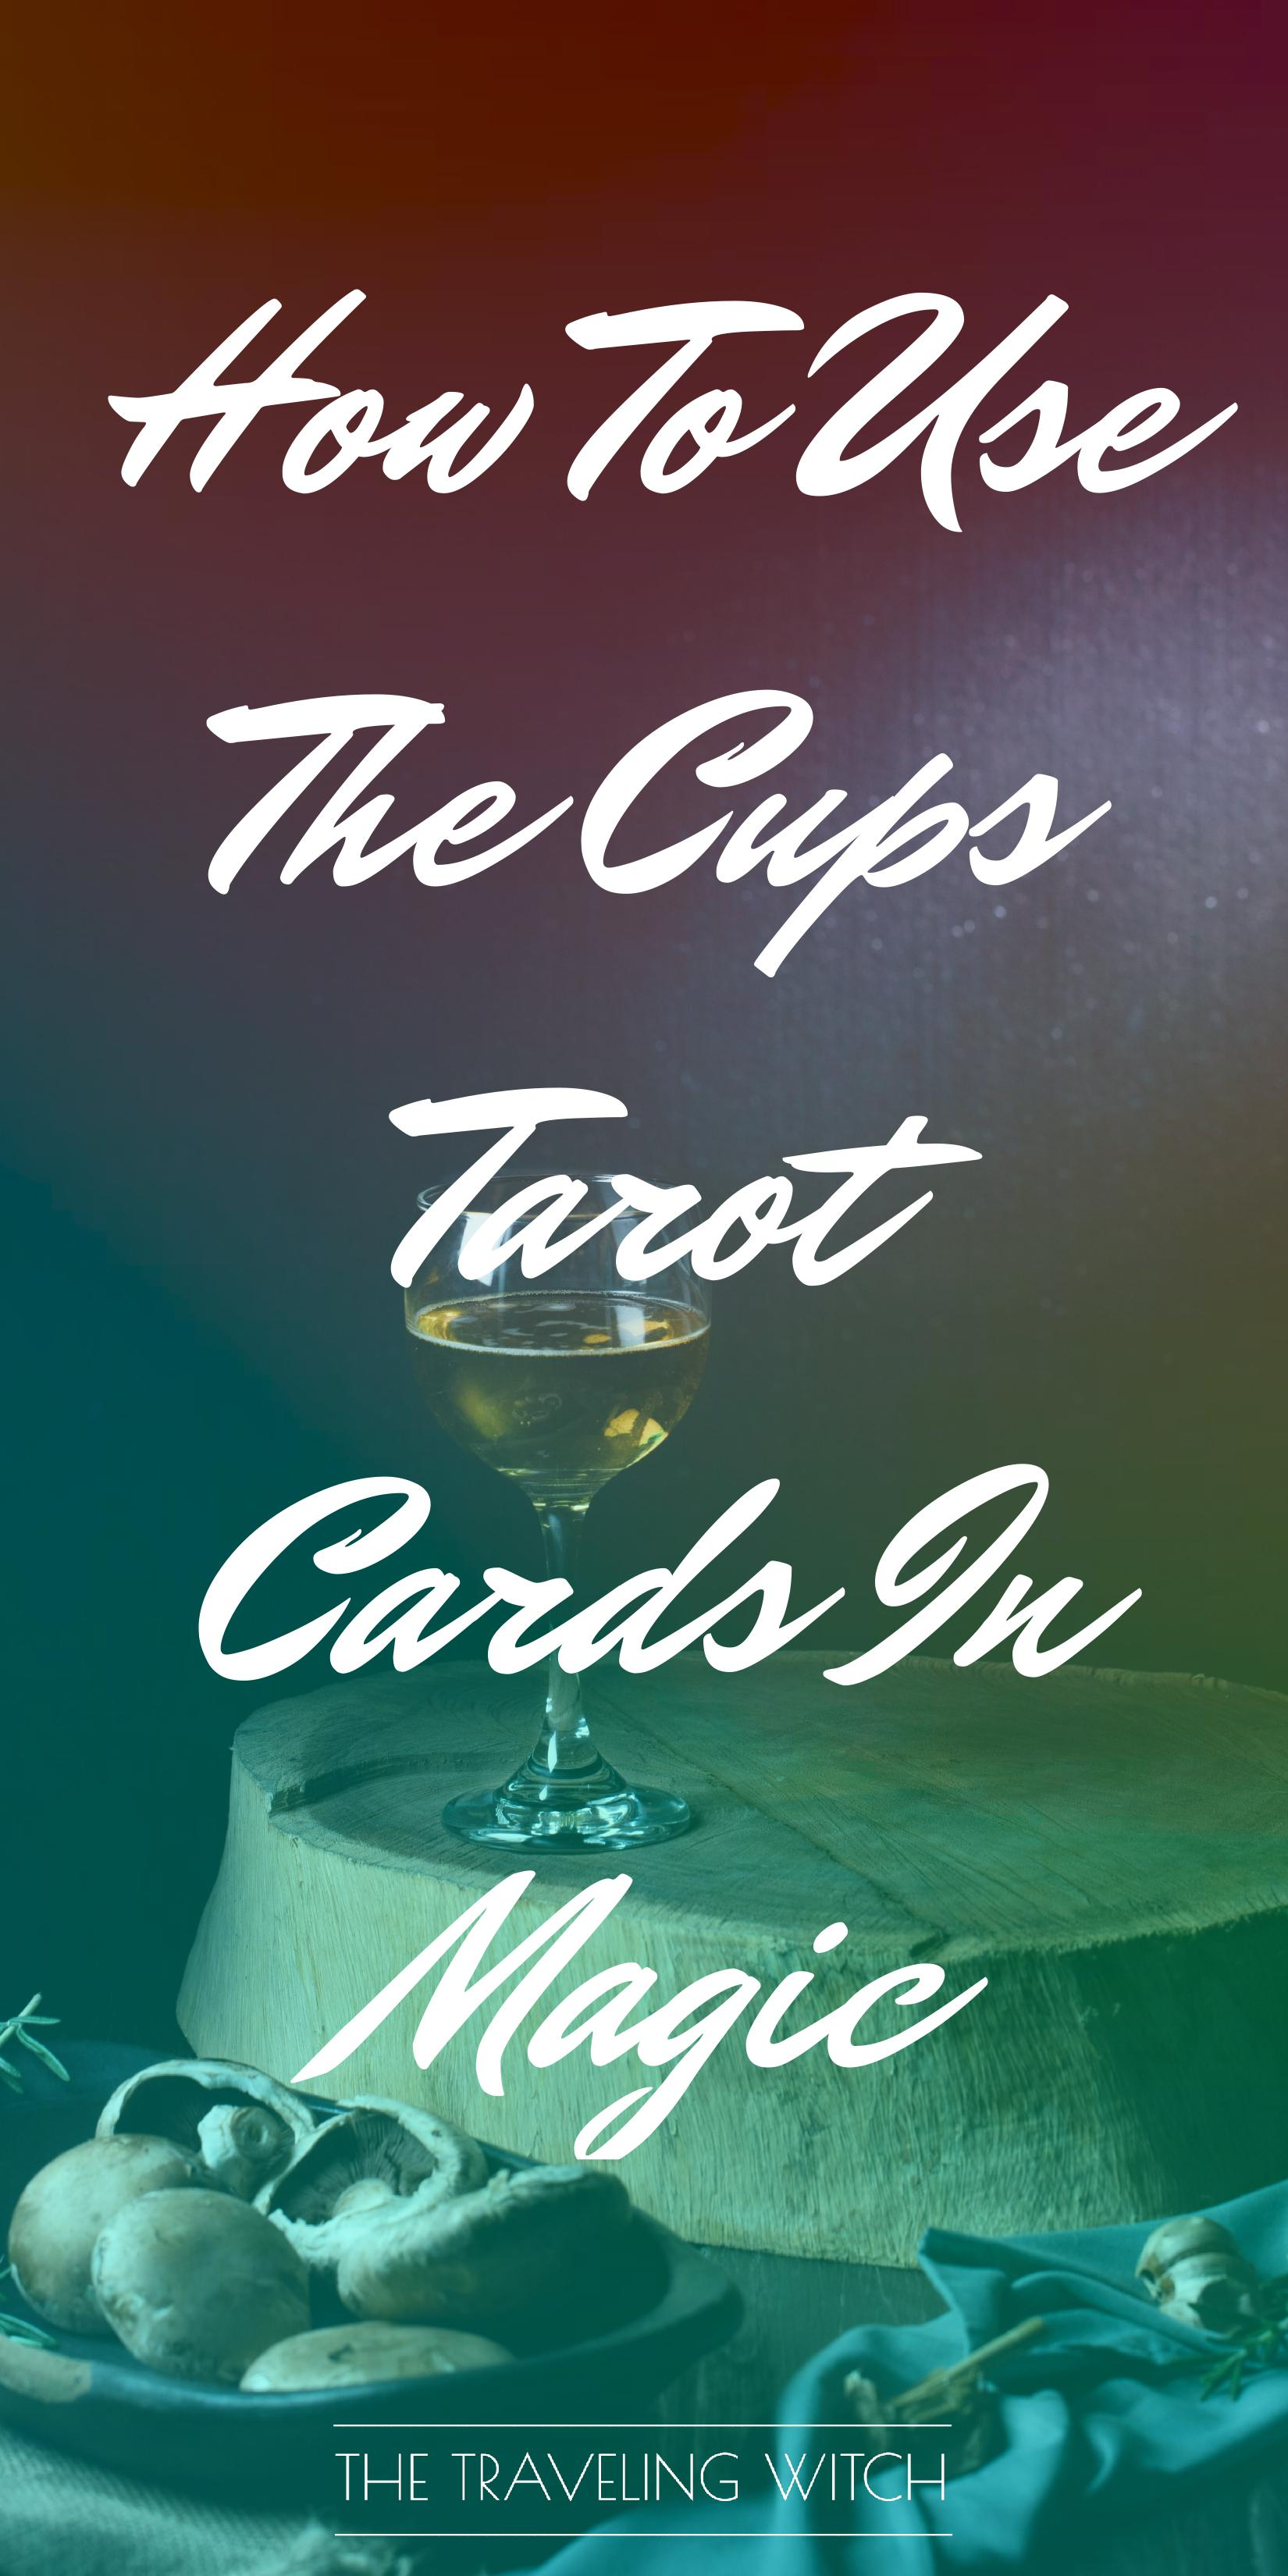 How To Use The Cups Tarot Cards In Magic by The Traveling Witch